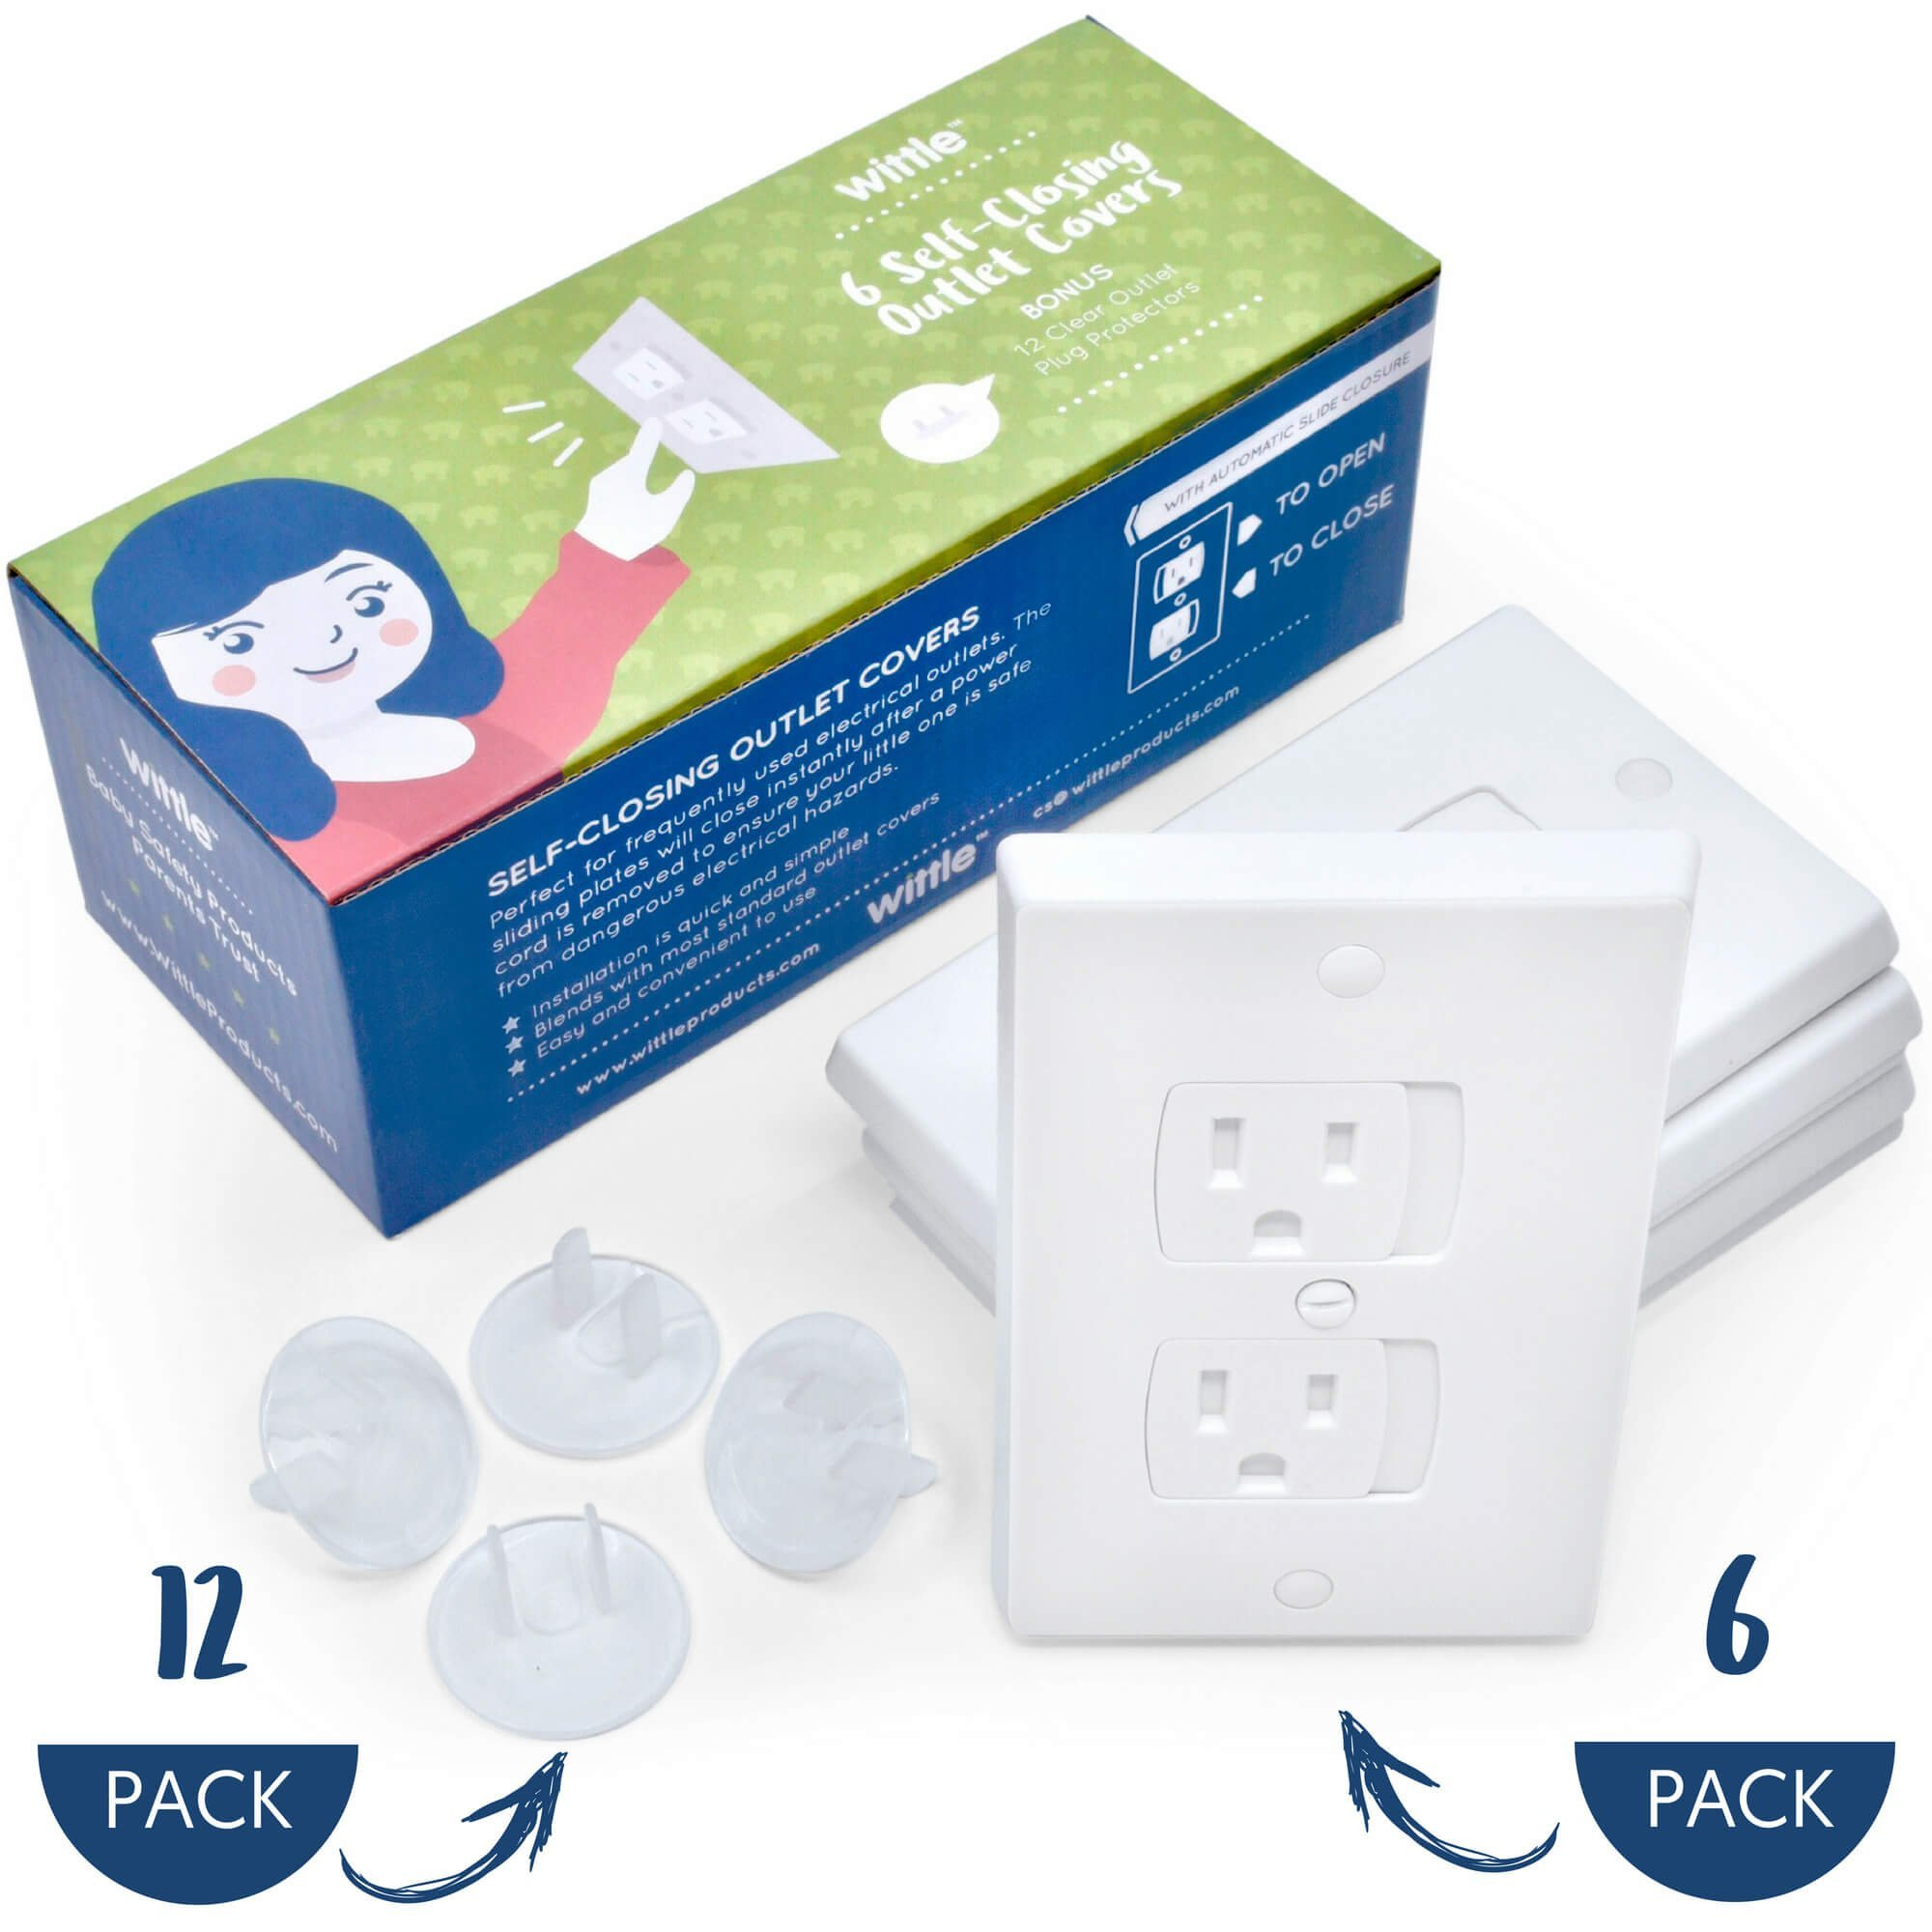 Wittle Self Closing Outlet Covers (6 White) Plus 12 Clear Plug Cover Outlet Protectors | Baby Proofing Outlets with Electrical Child Safety Kit!